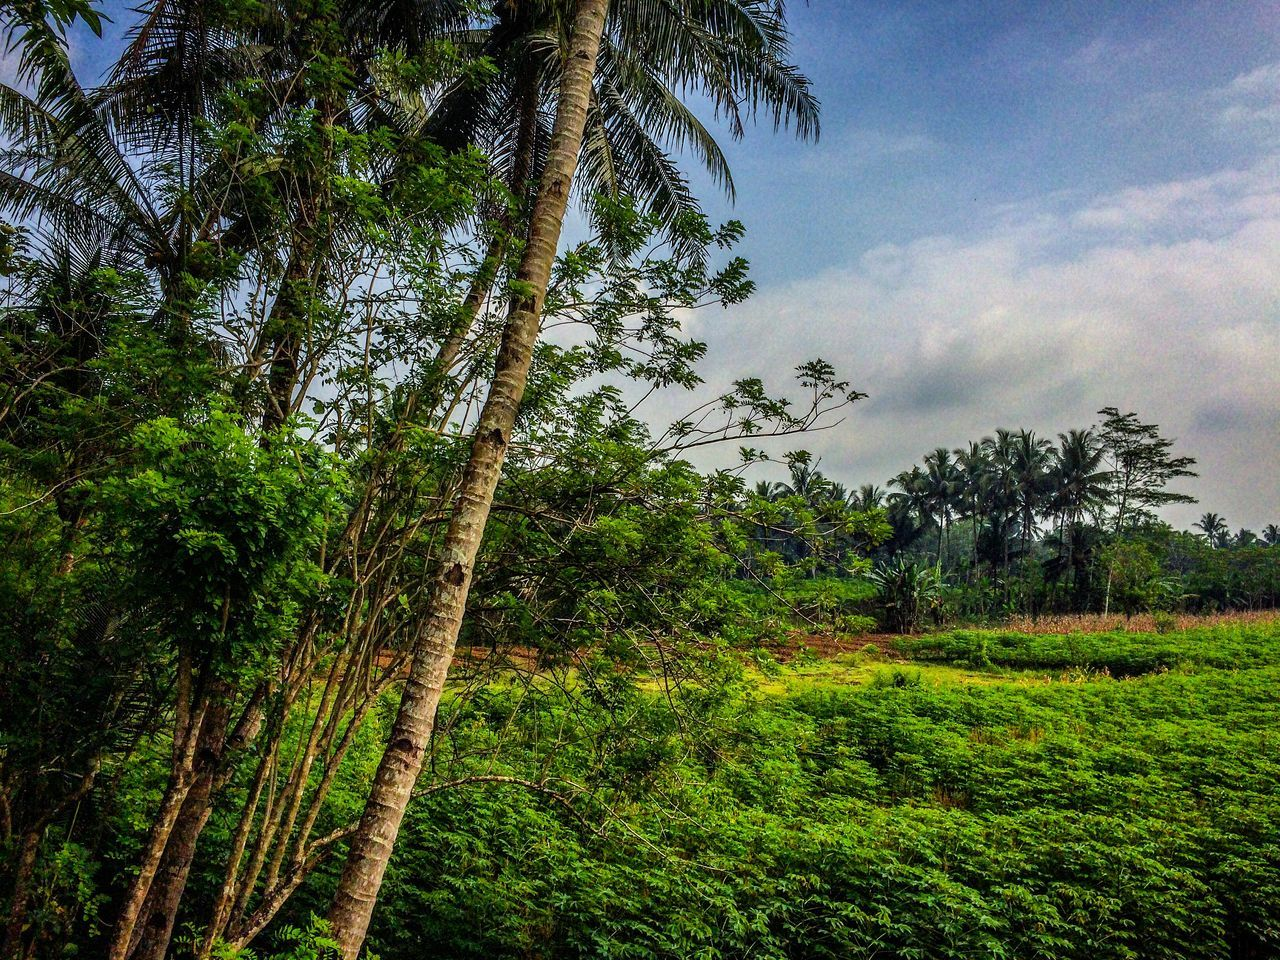 tree, nature, growth, forest, beauty in nature, green, no people, outdoors, sky, tranquility, landscape, tree trunk, green color, vegetation, day, scenics, palm tree, branch